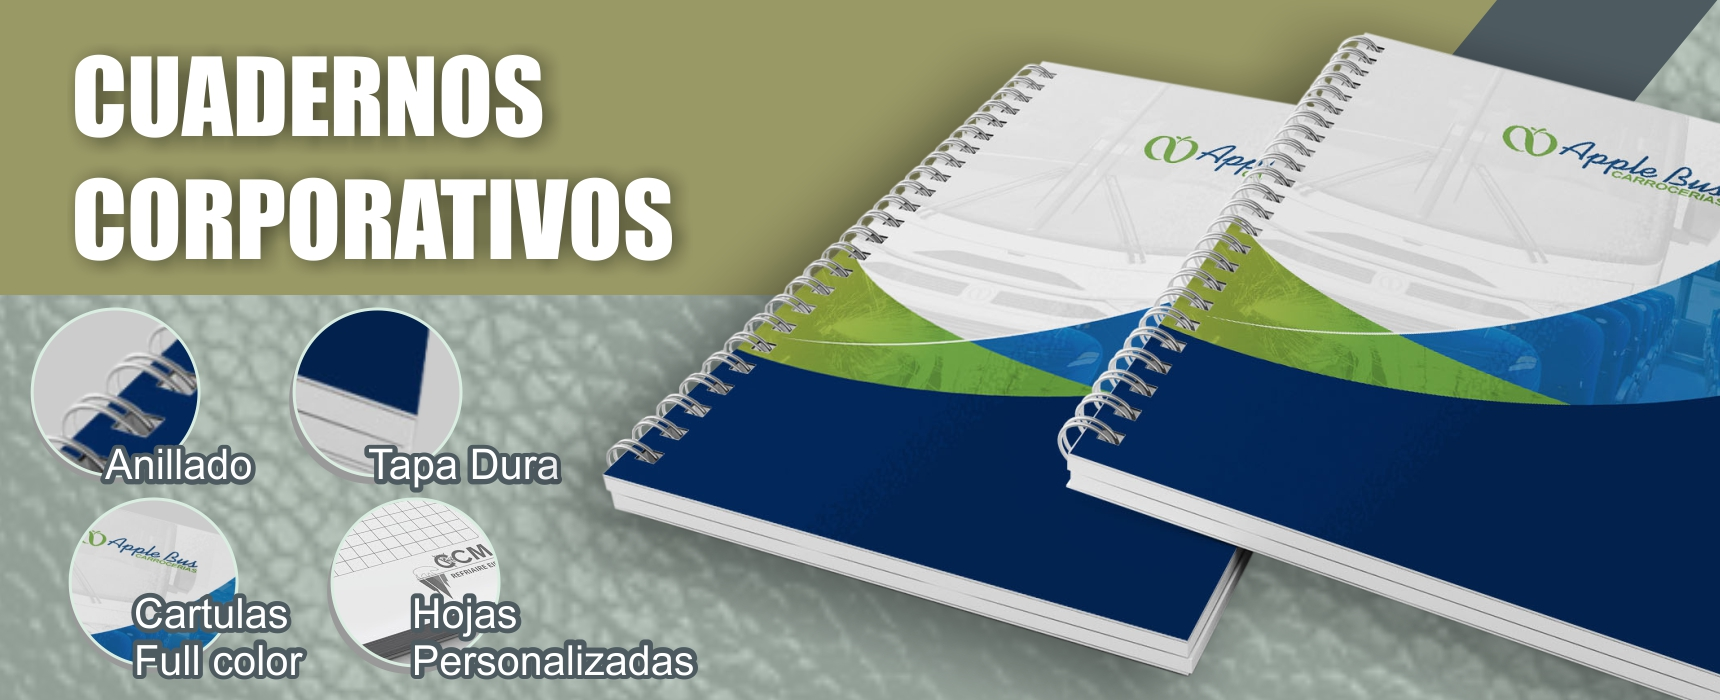 banner web cuadernos corporativos BLOG